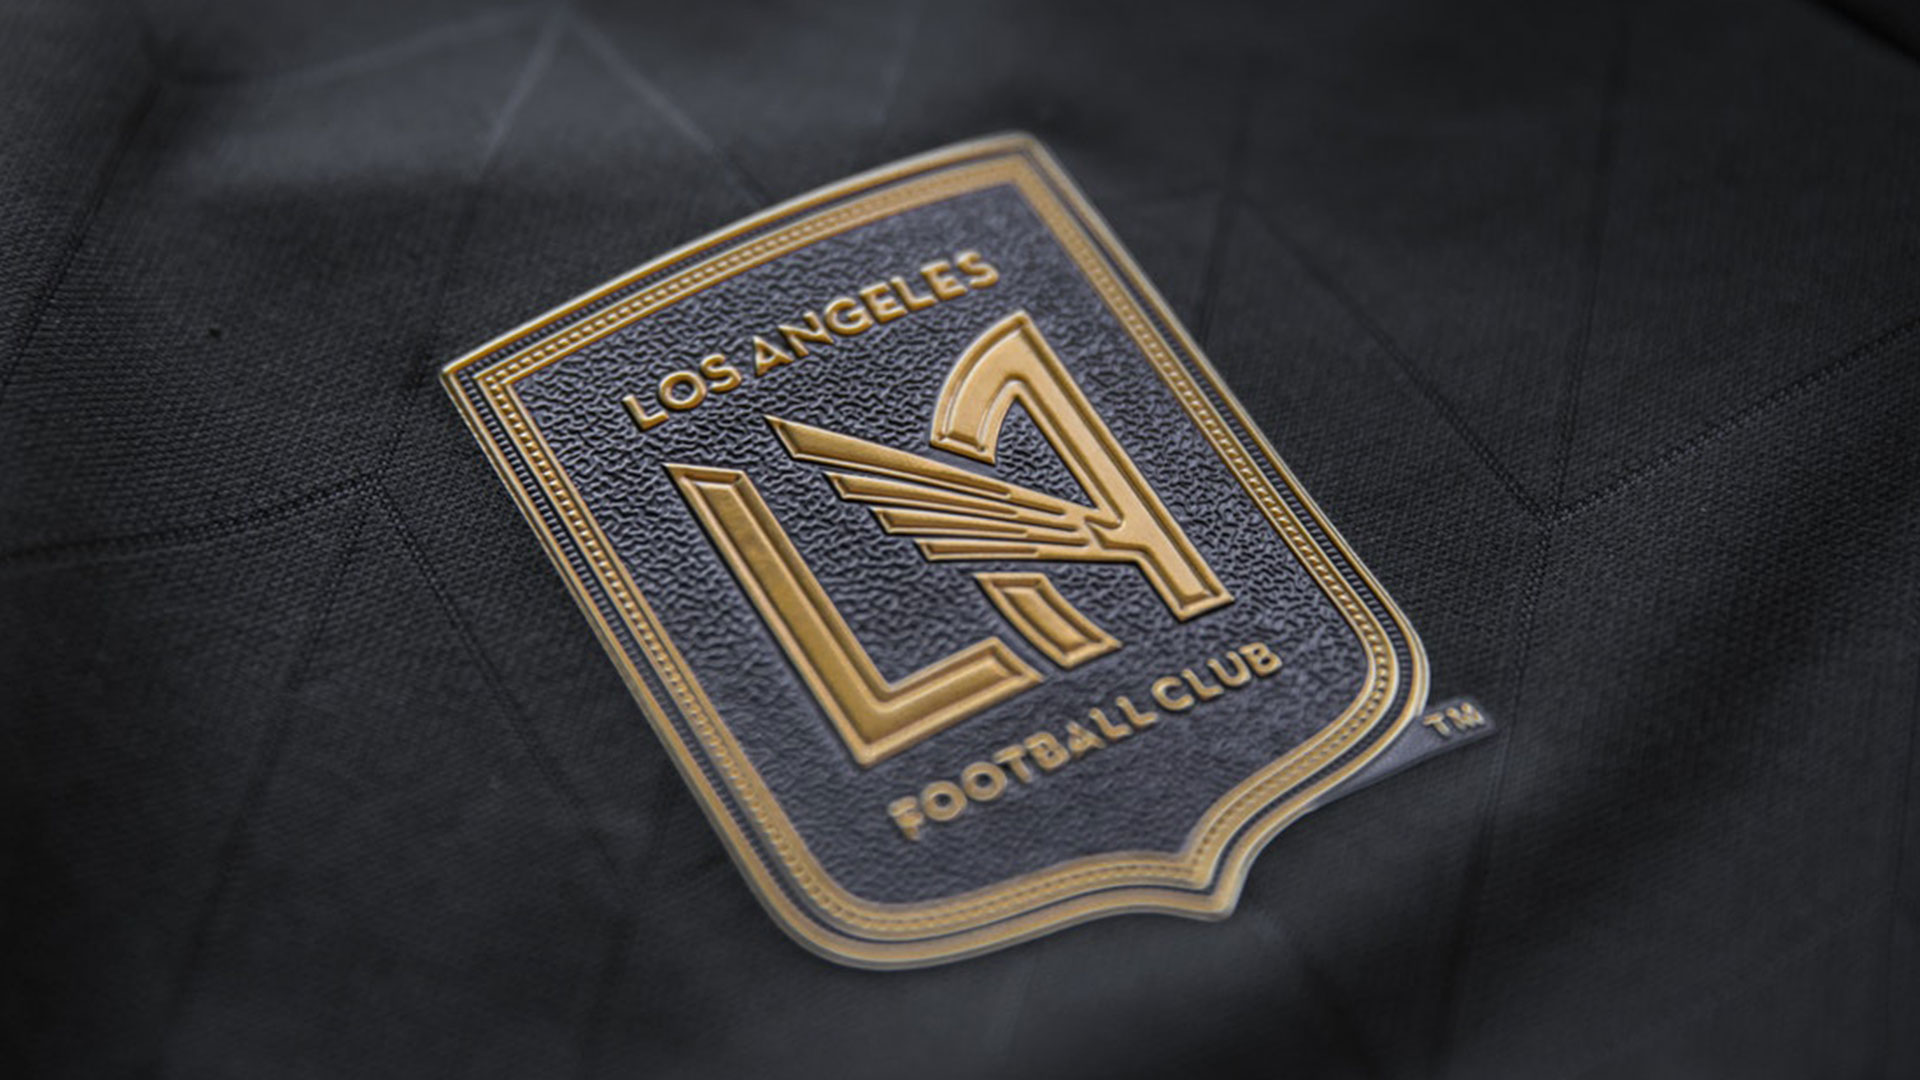 LAFC MATTHEW WOLFF KIT DESIGN HOME JERSEY 2017-18 ADIDAS INAUGURAL SEASON SHOULDER TO SHOULDER